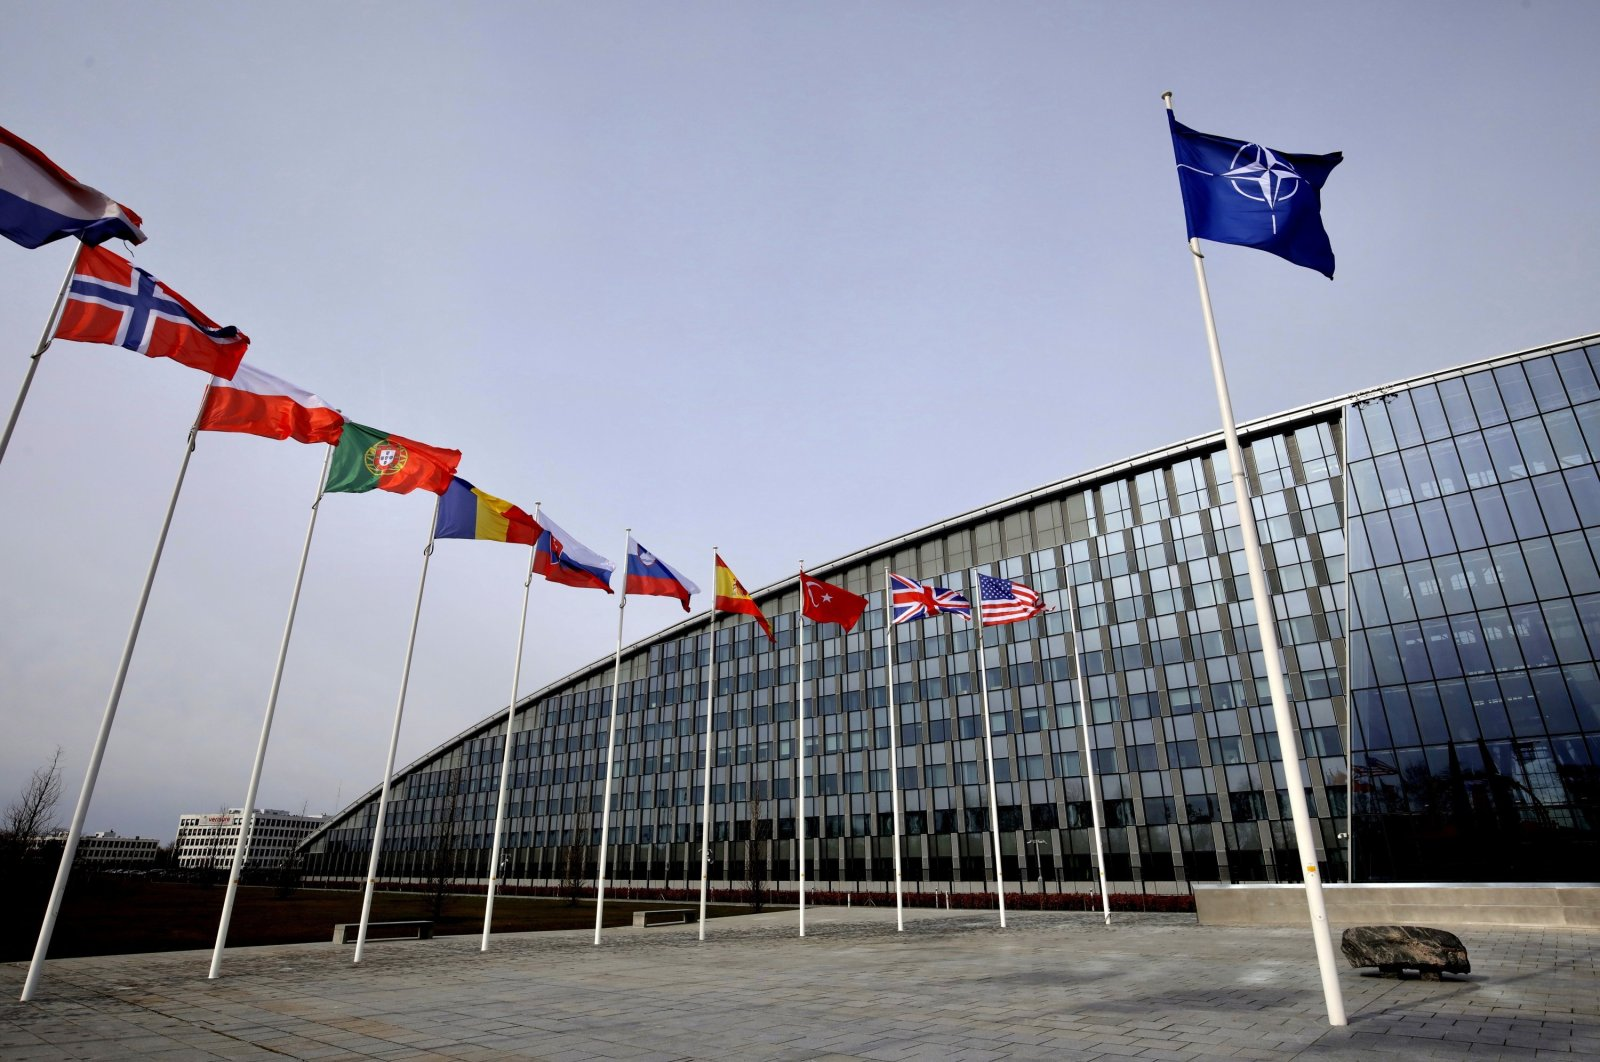 Flags of NATO alliance members flap in the wind outside NATO headquarters in Brussels, Belgium, Feb. 28, 2020. (AP Photo)